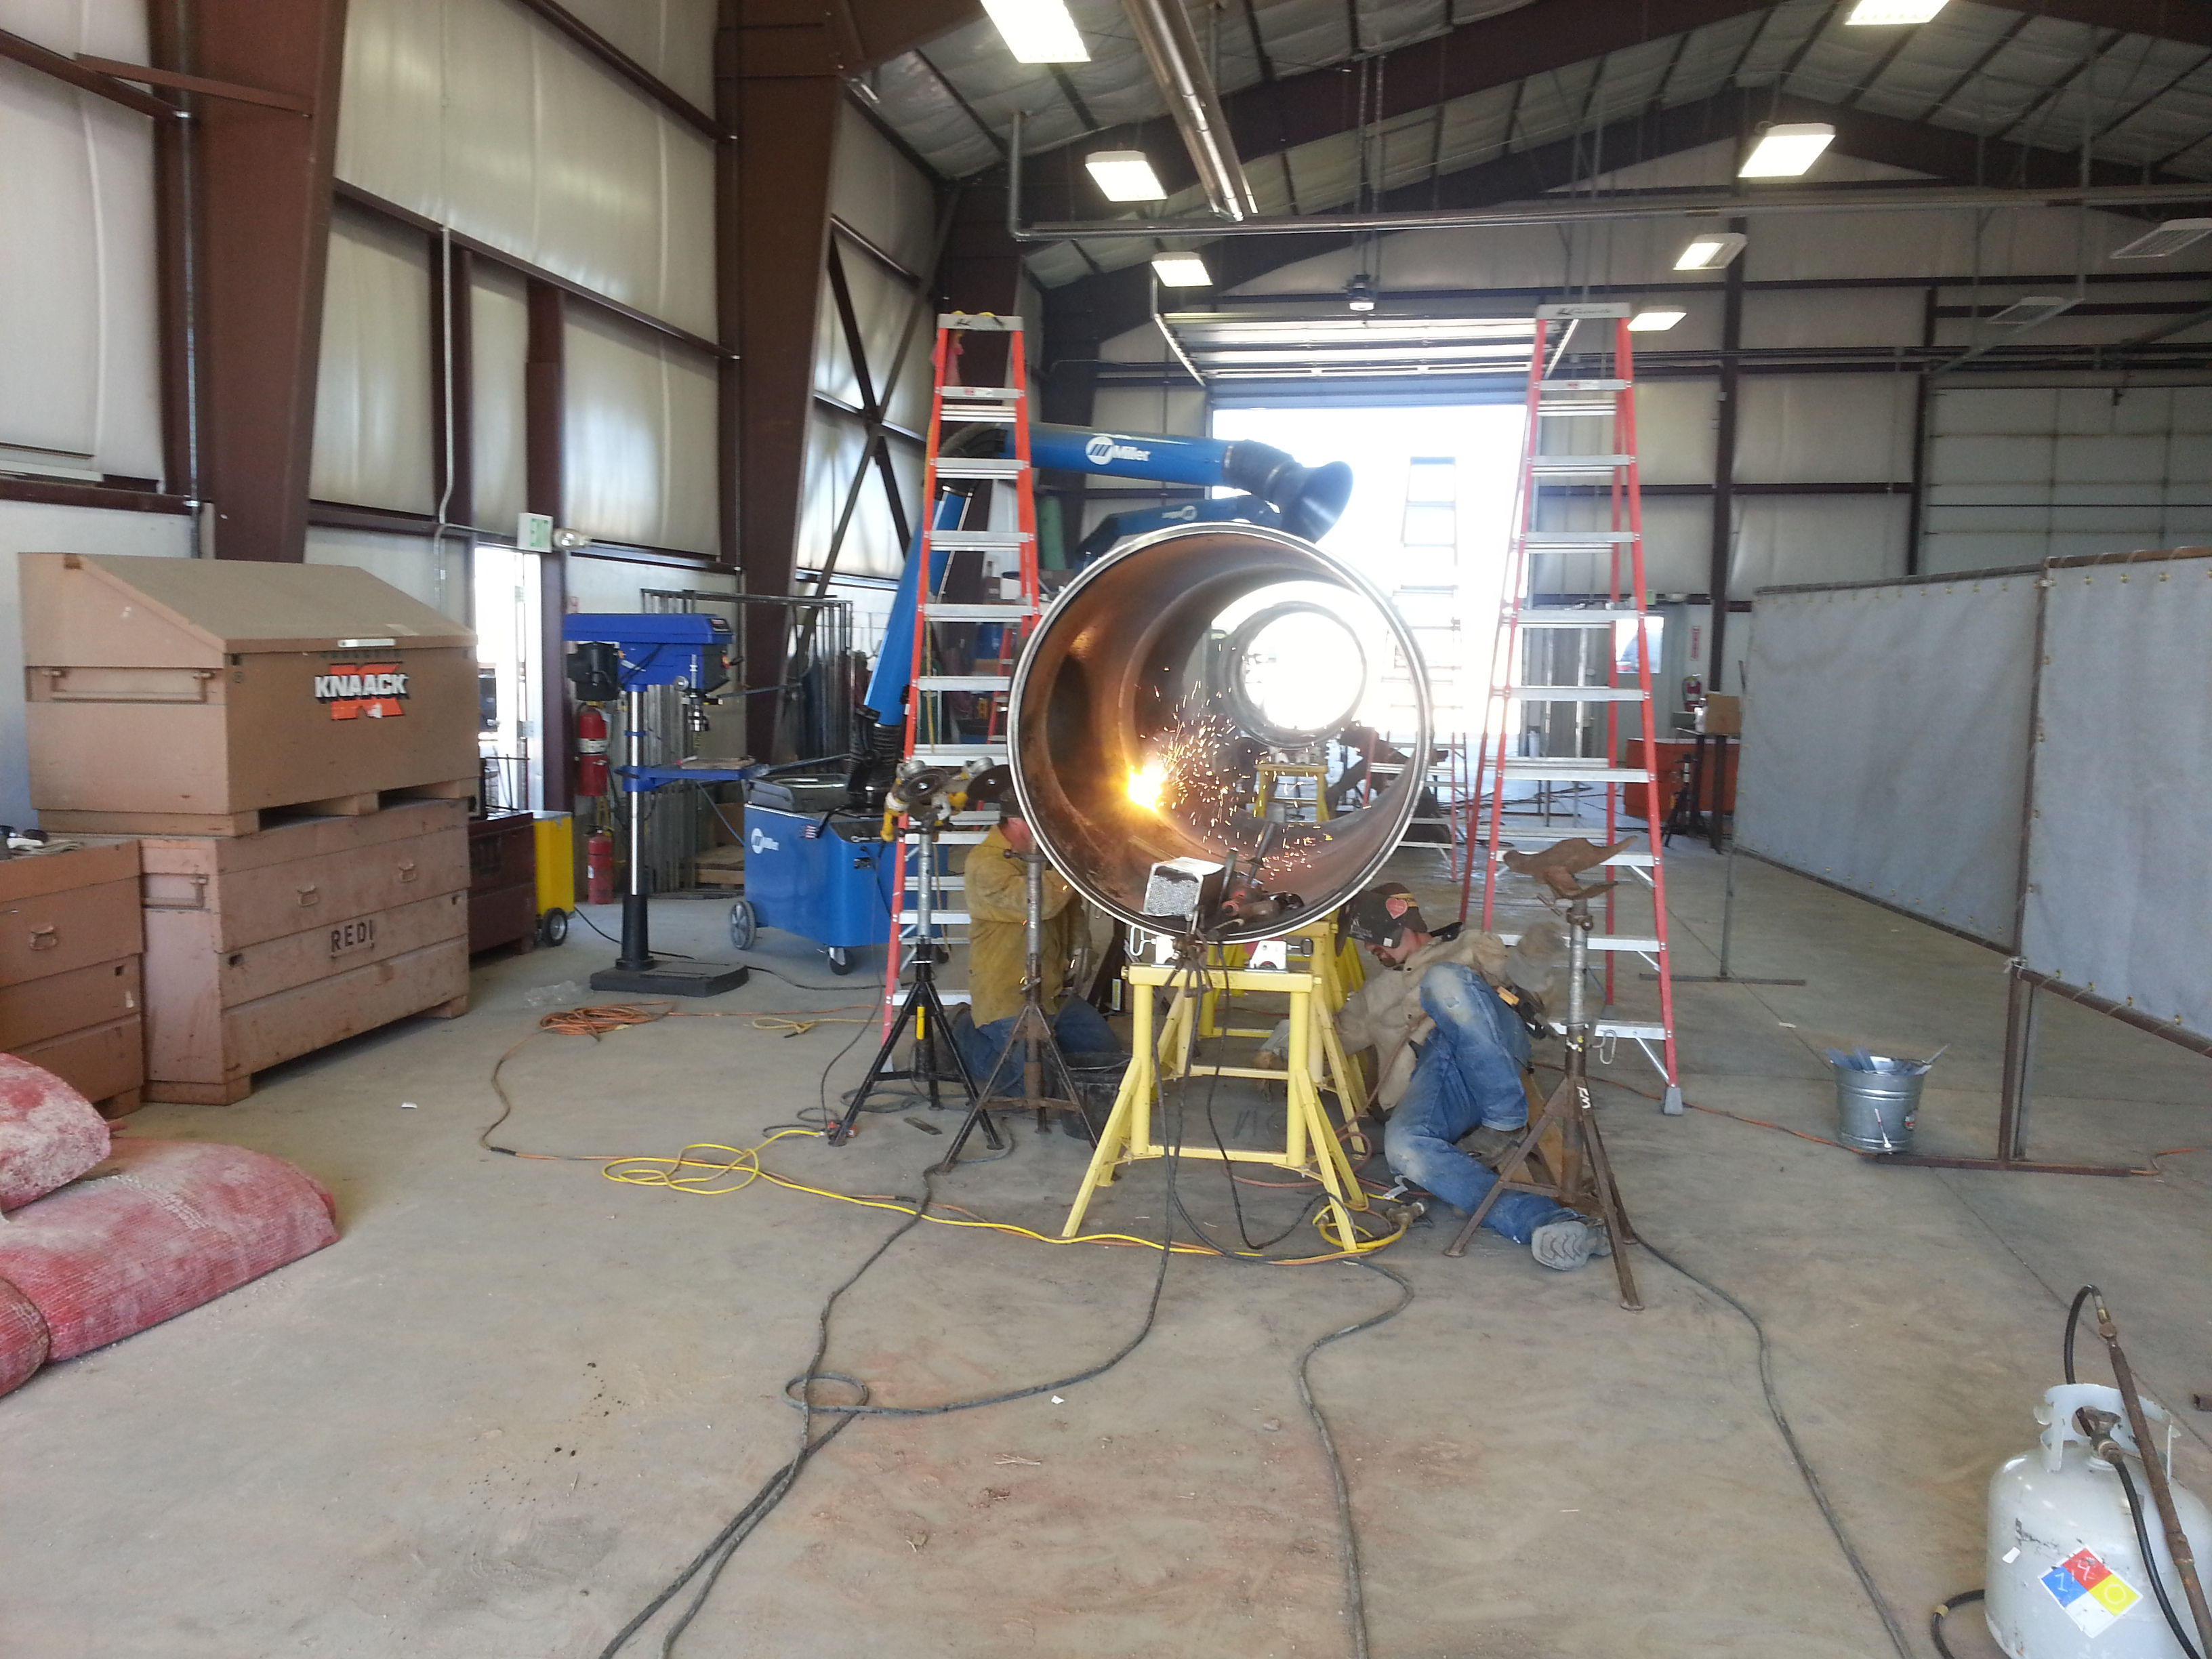 Redi Services | Industrial Mechanical, Piping, and Metal Building